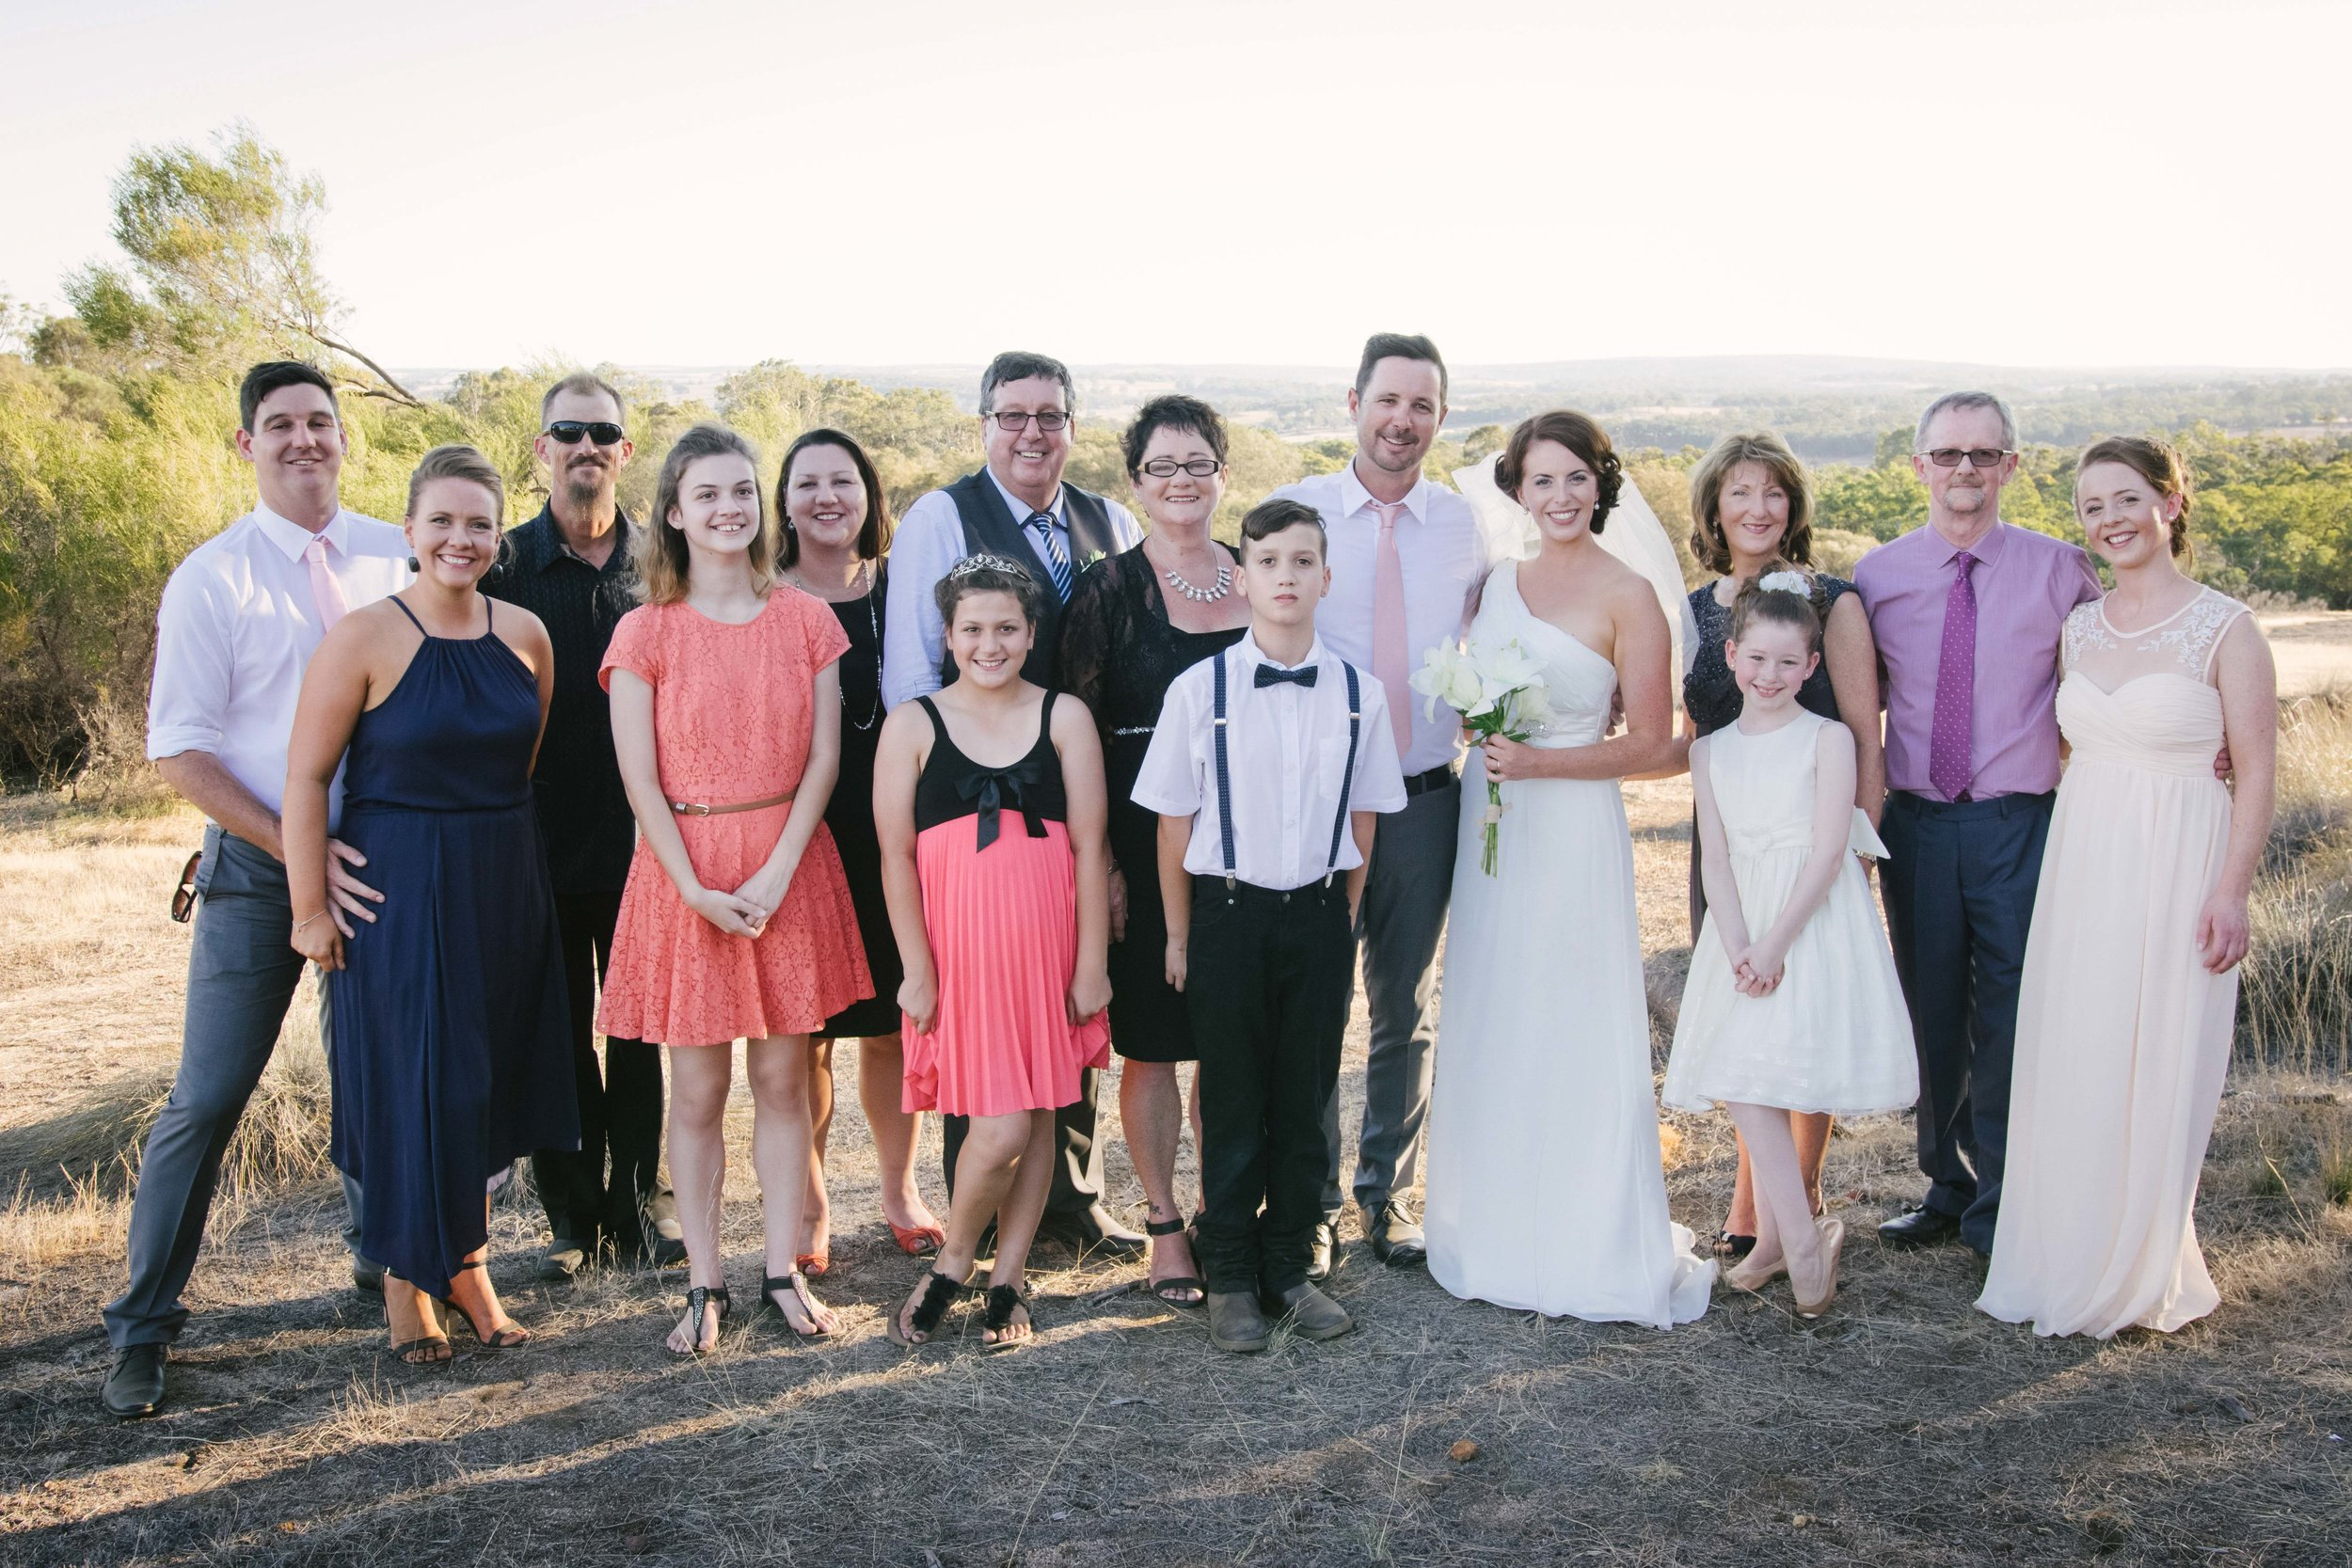 Rustc Rural Farm Wheatbelt Country Wedding Photographer Photography Candid Documentary (27).jpg